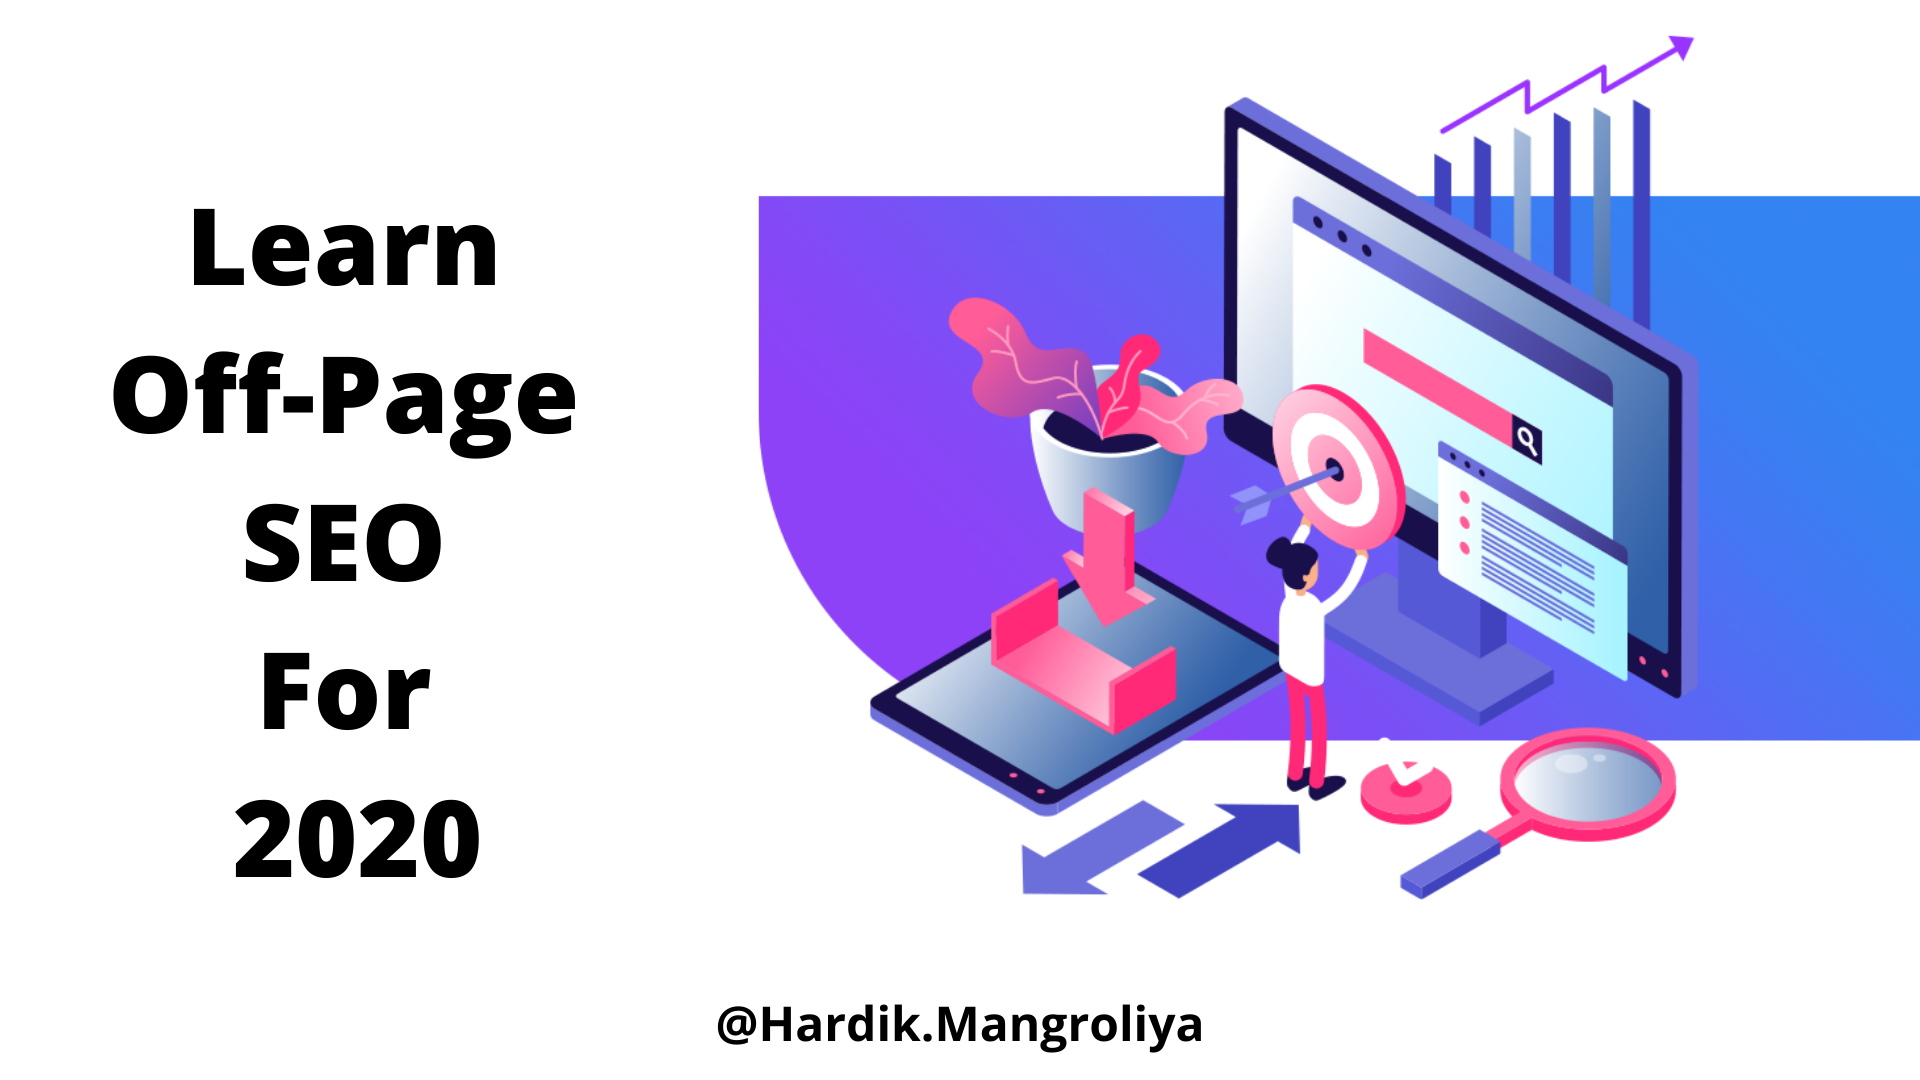 Learn Off-Page SEO For 2020?